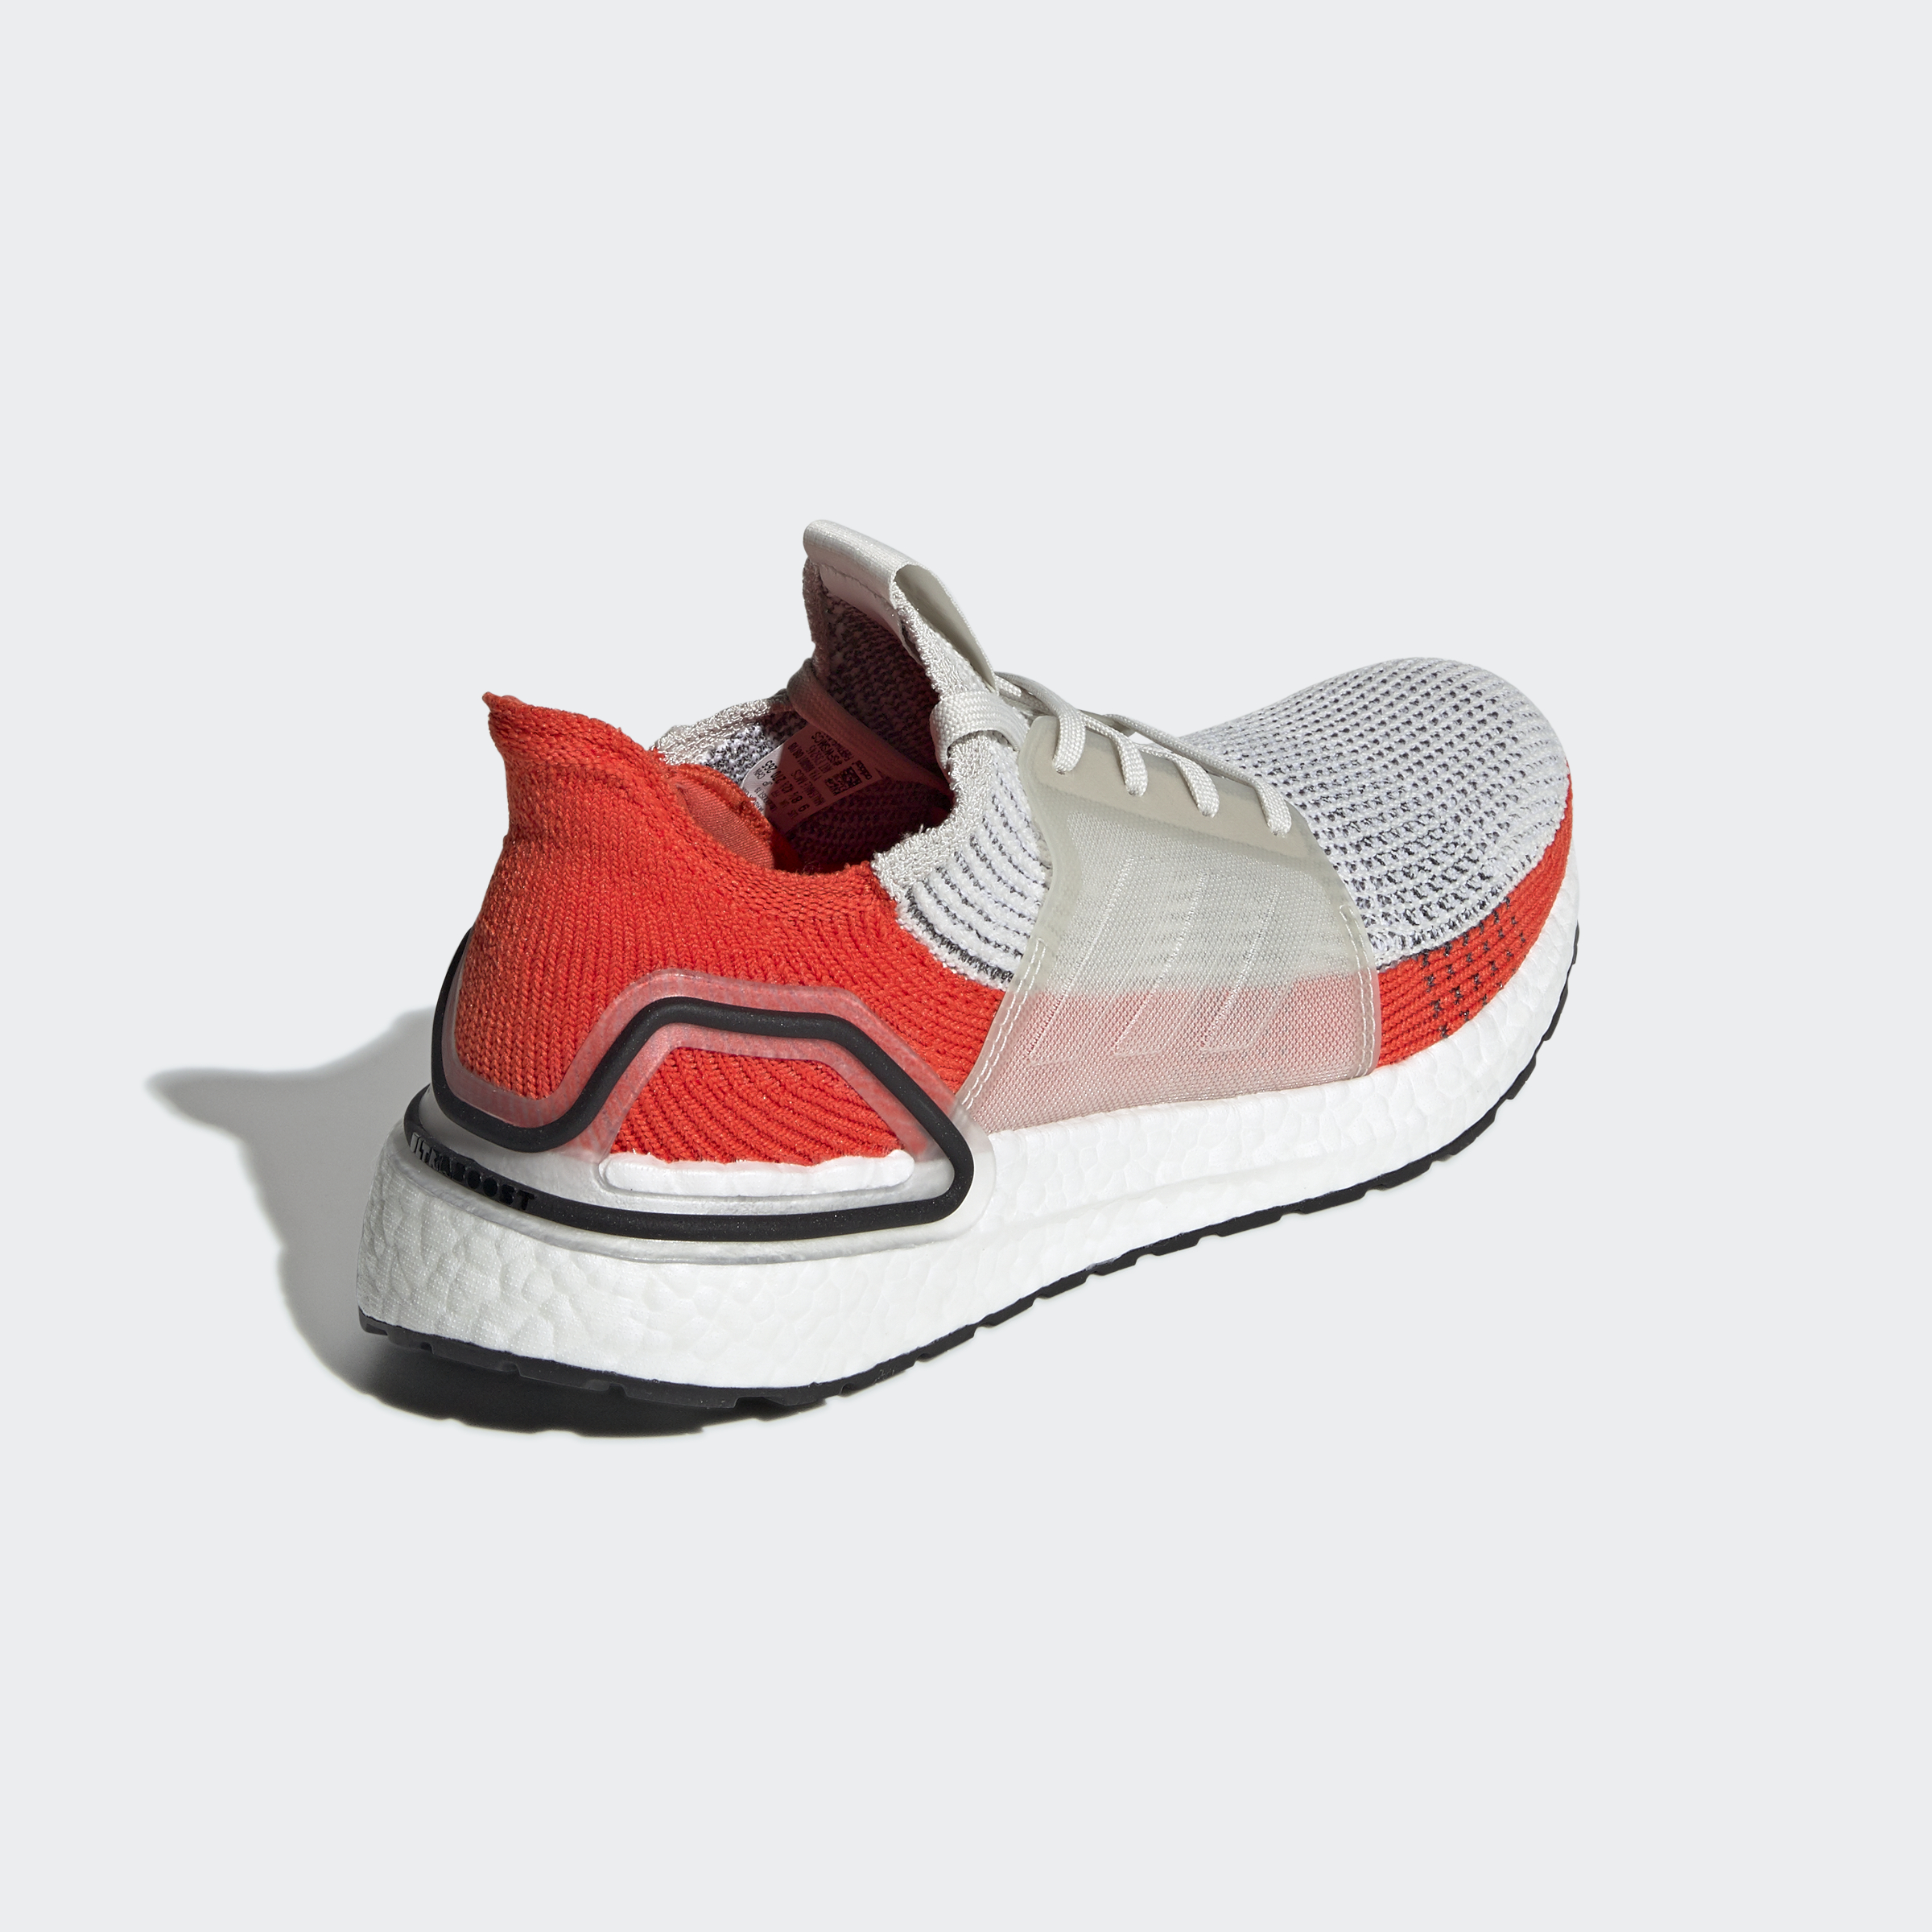 adidas-Ultraboost-19-Shoes-Athletic-amp-Sneakers thumbnail 48